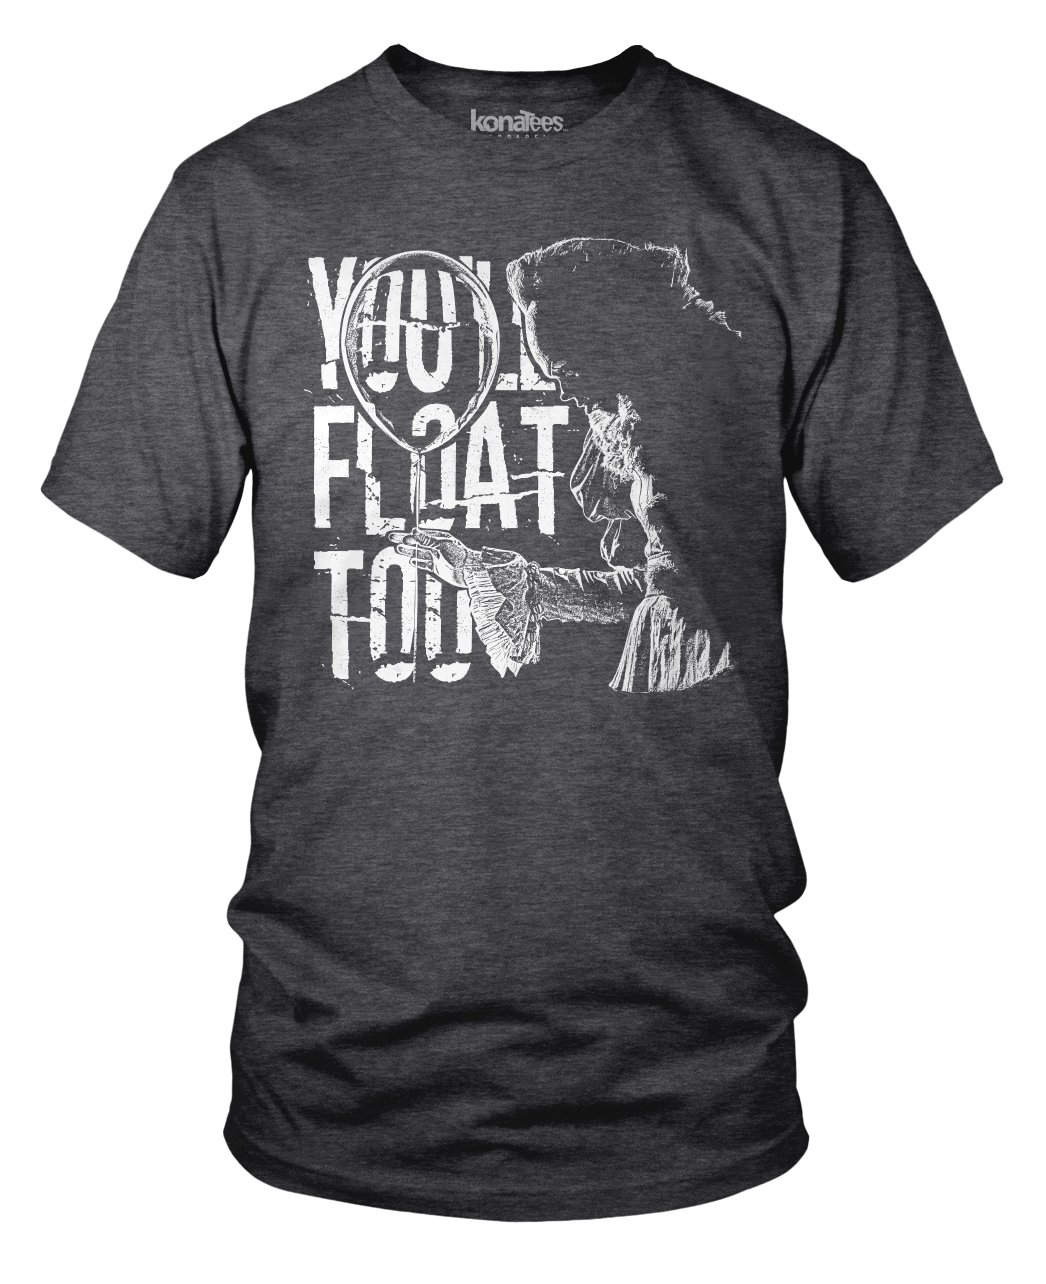 Stephen King's ''IT'', Pennywise, ''You'll Float Too'' Movie Fan Shirt- (Hthr Charcoal) Medium